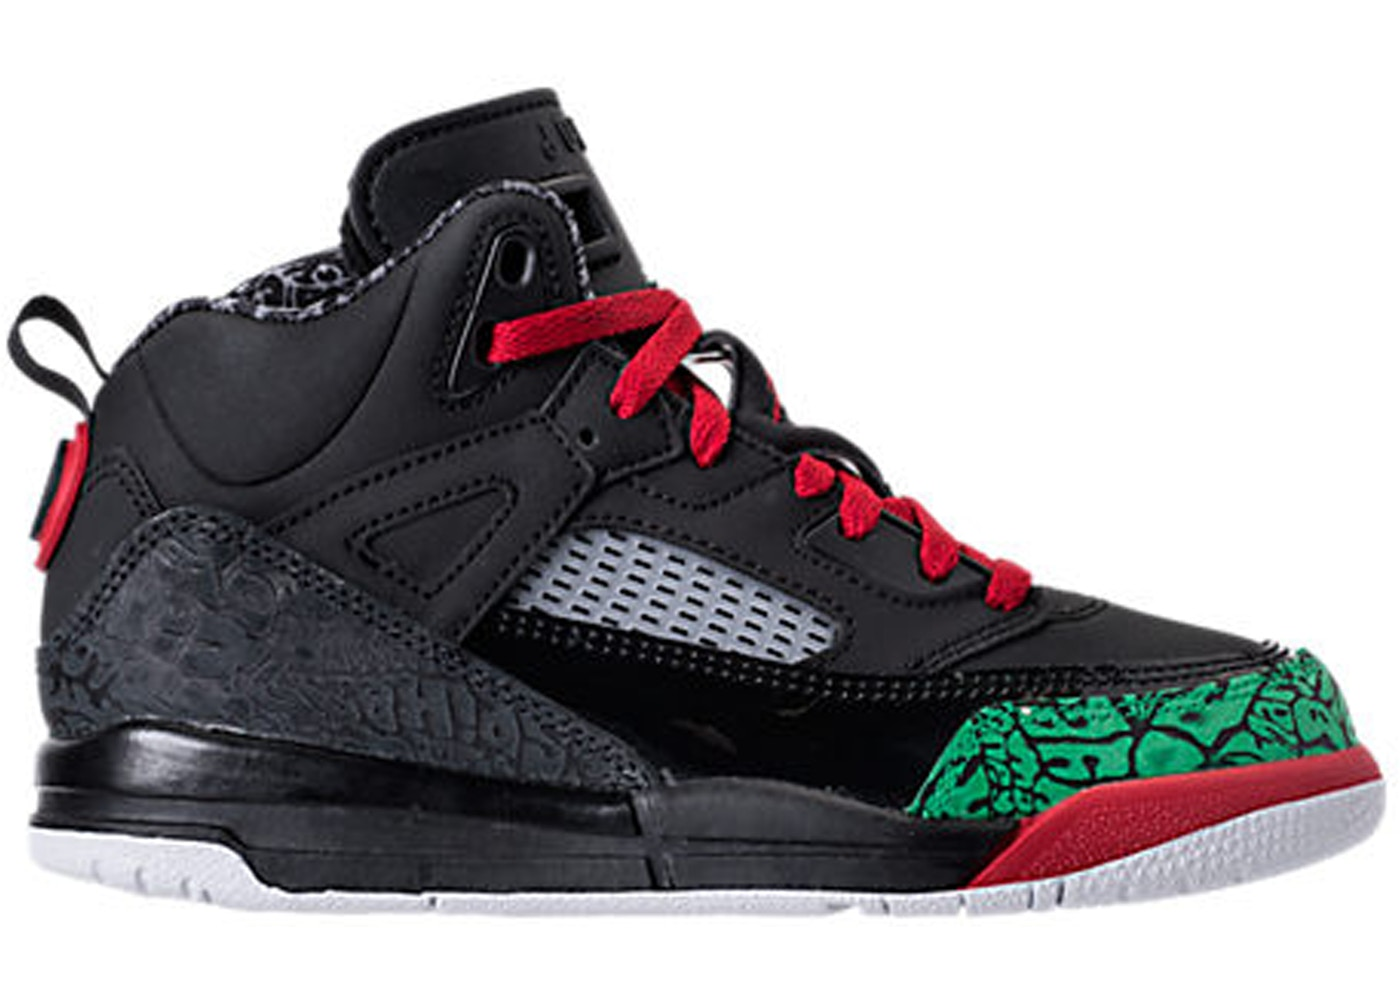 46e96fee5756 Buy Air Jordan Spizike Shoes   Deadstock Sneakers